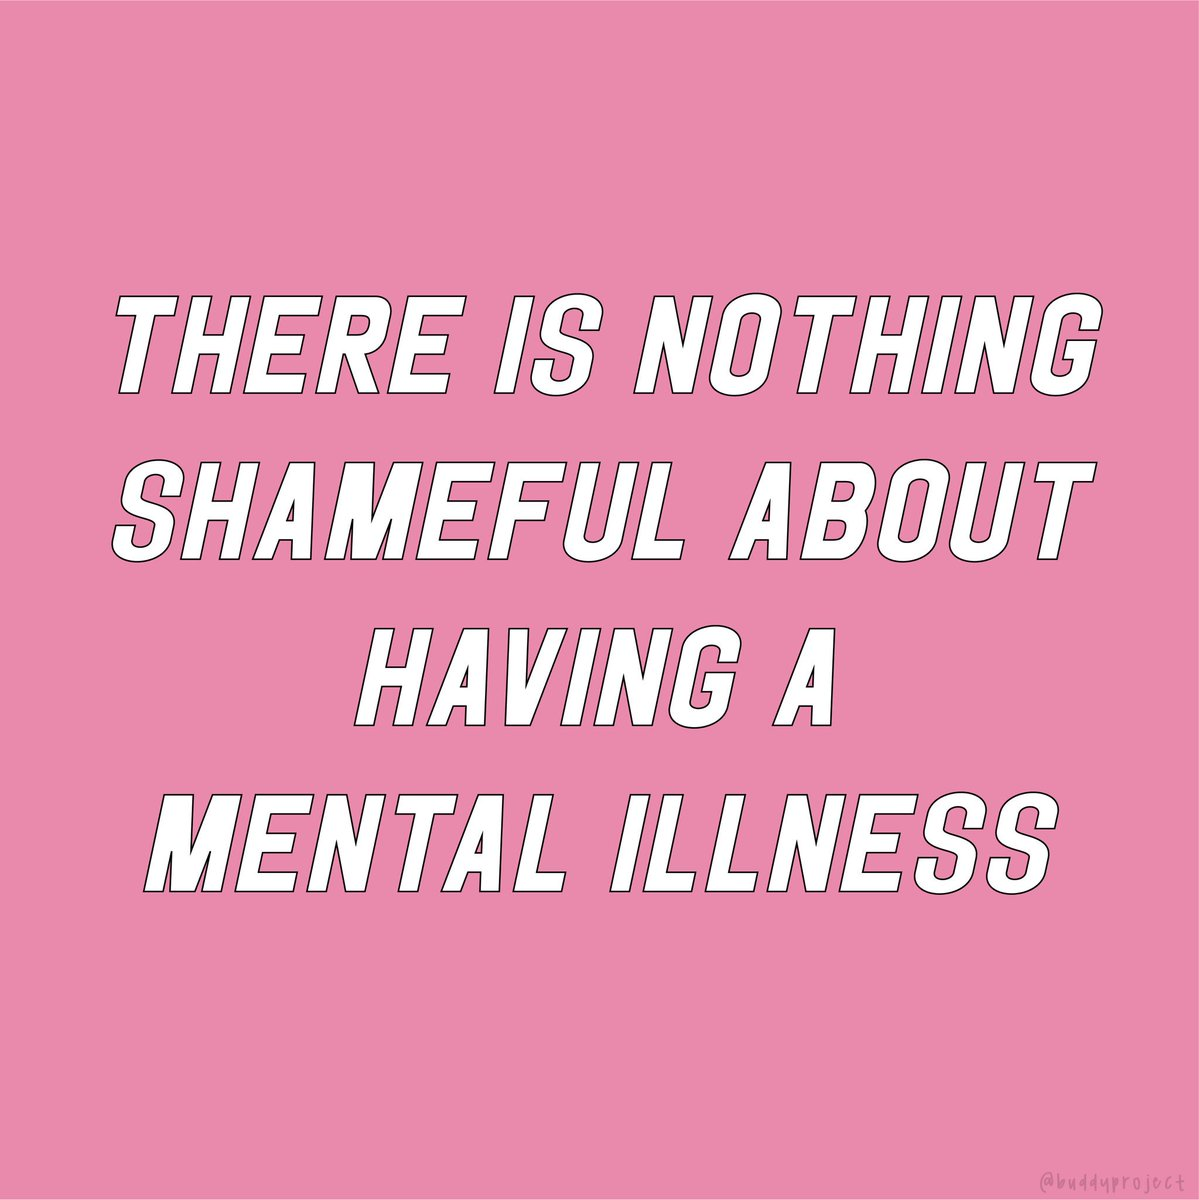 There is nothing shameful about your mental health.